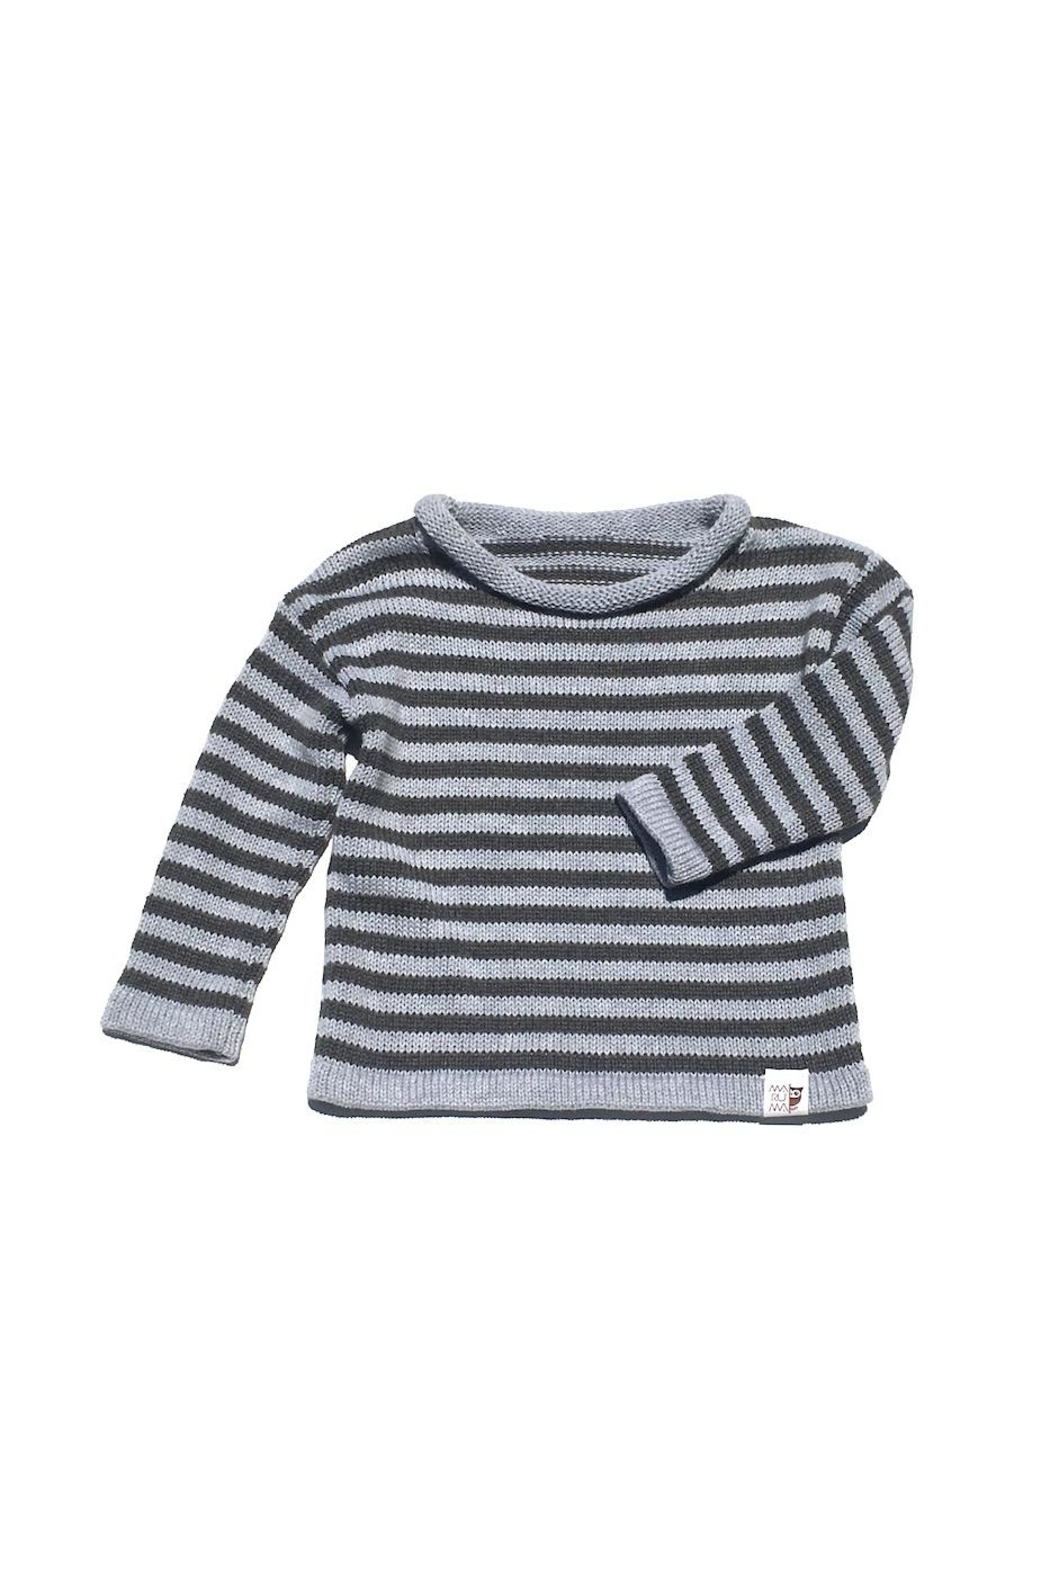 Maruma Kids Charcoal Striped Sweater - Front Cropped Image